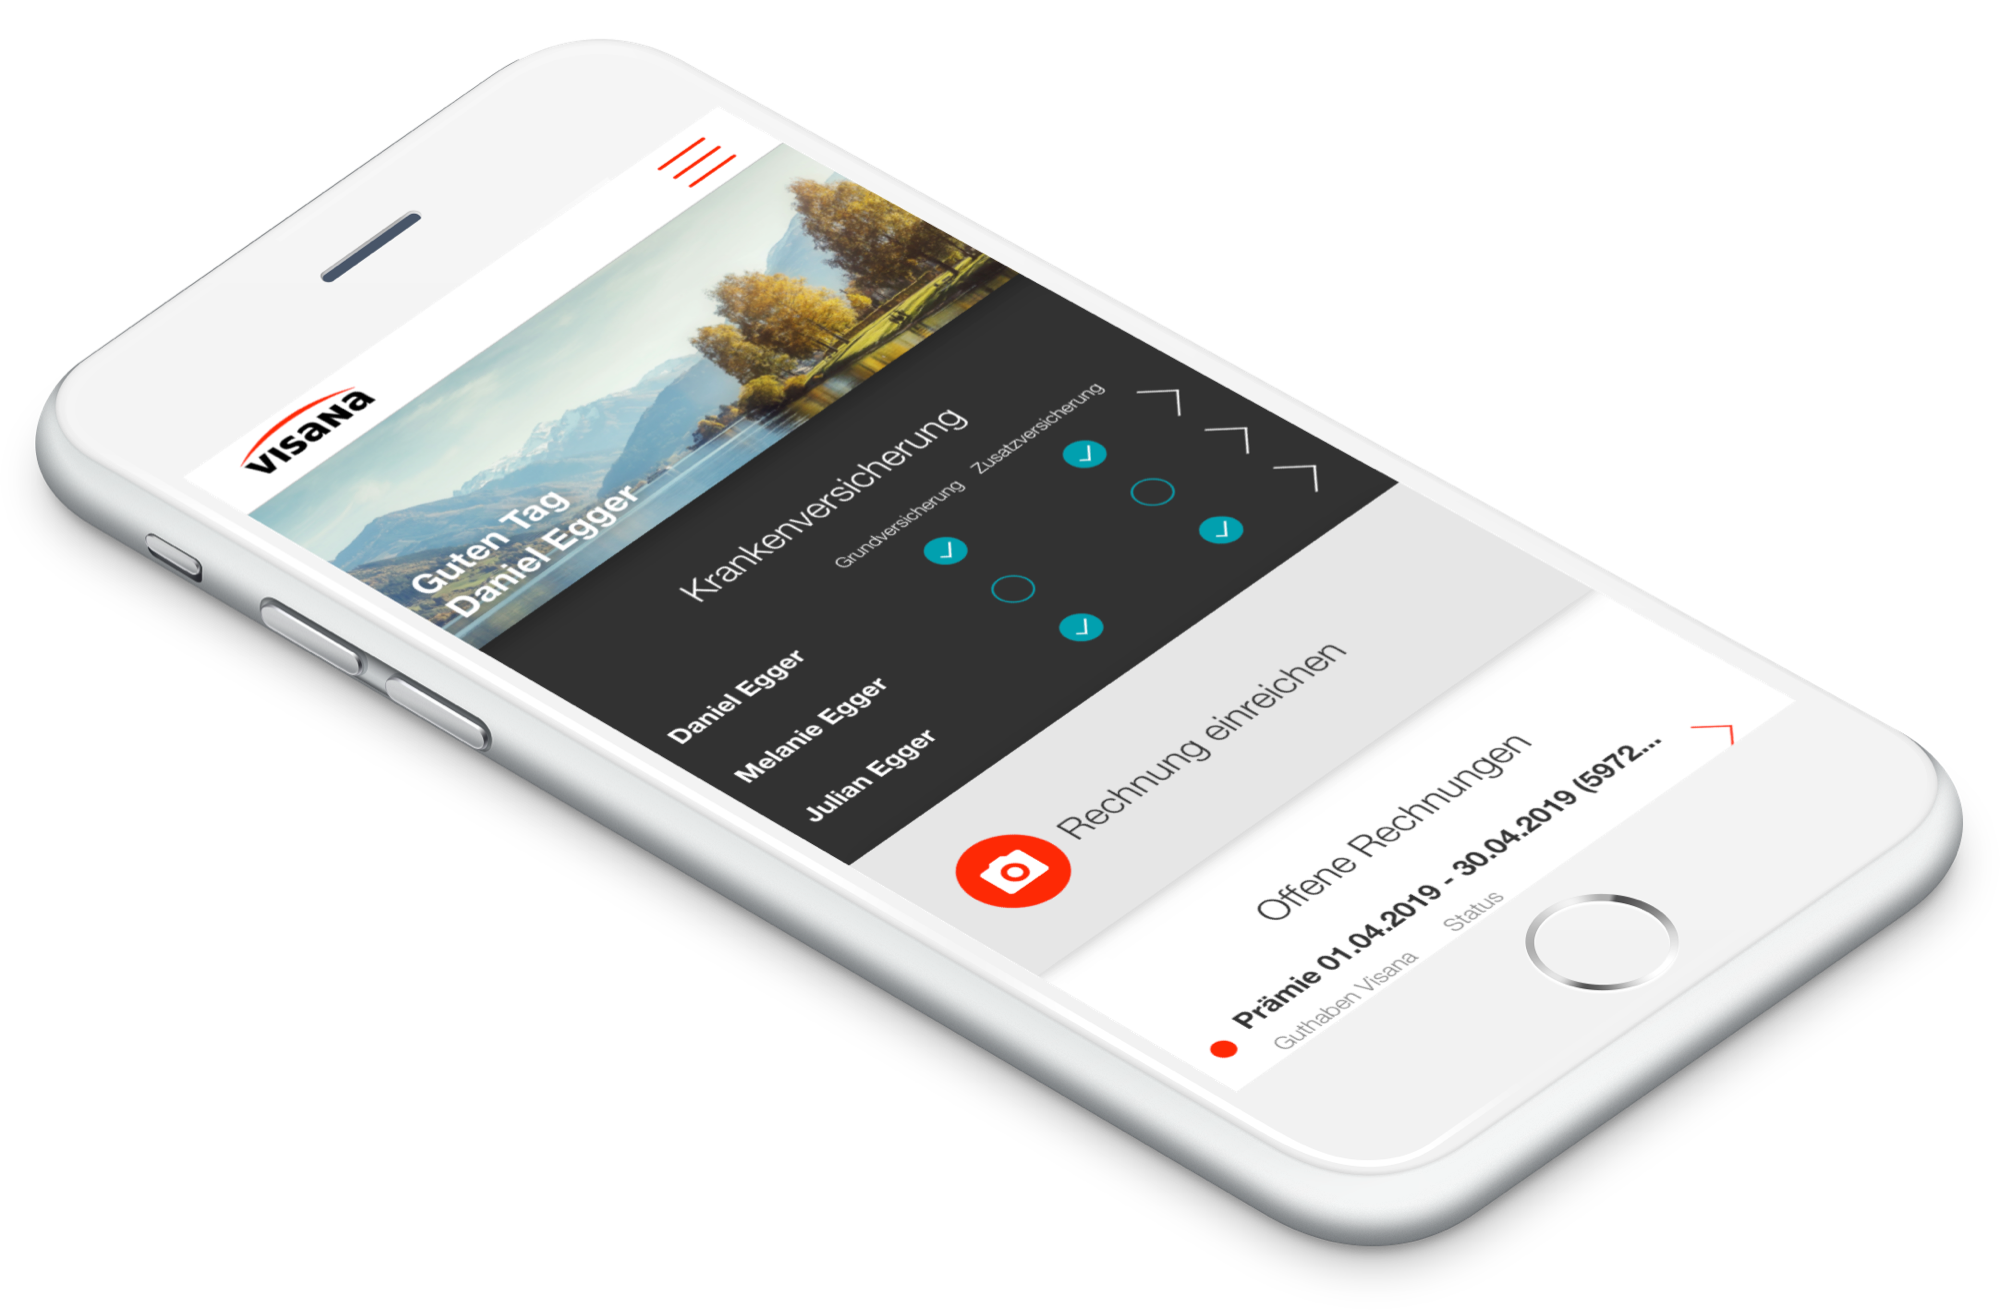 Mobile apps service in Switzerland